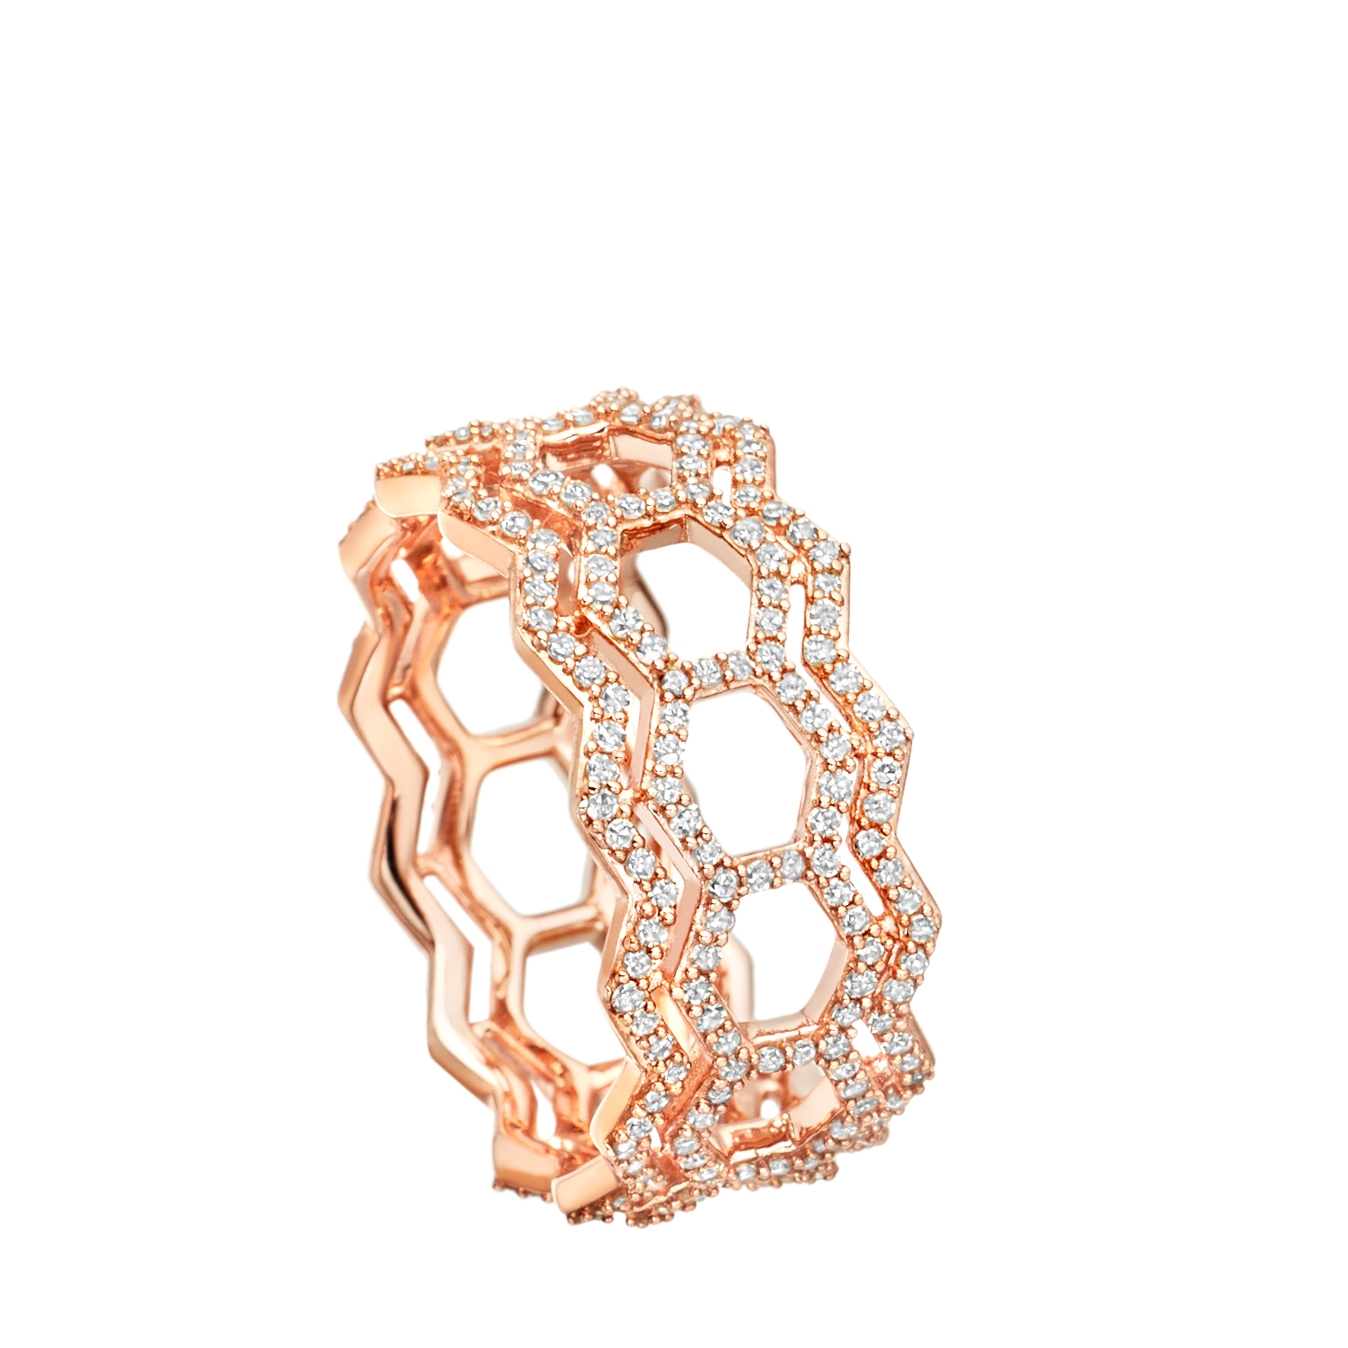 Double Varro Honeycomb Ring